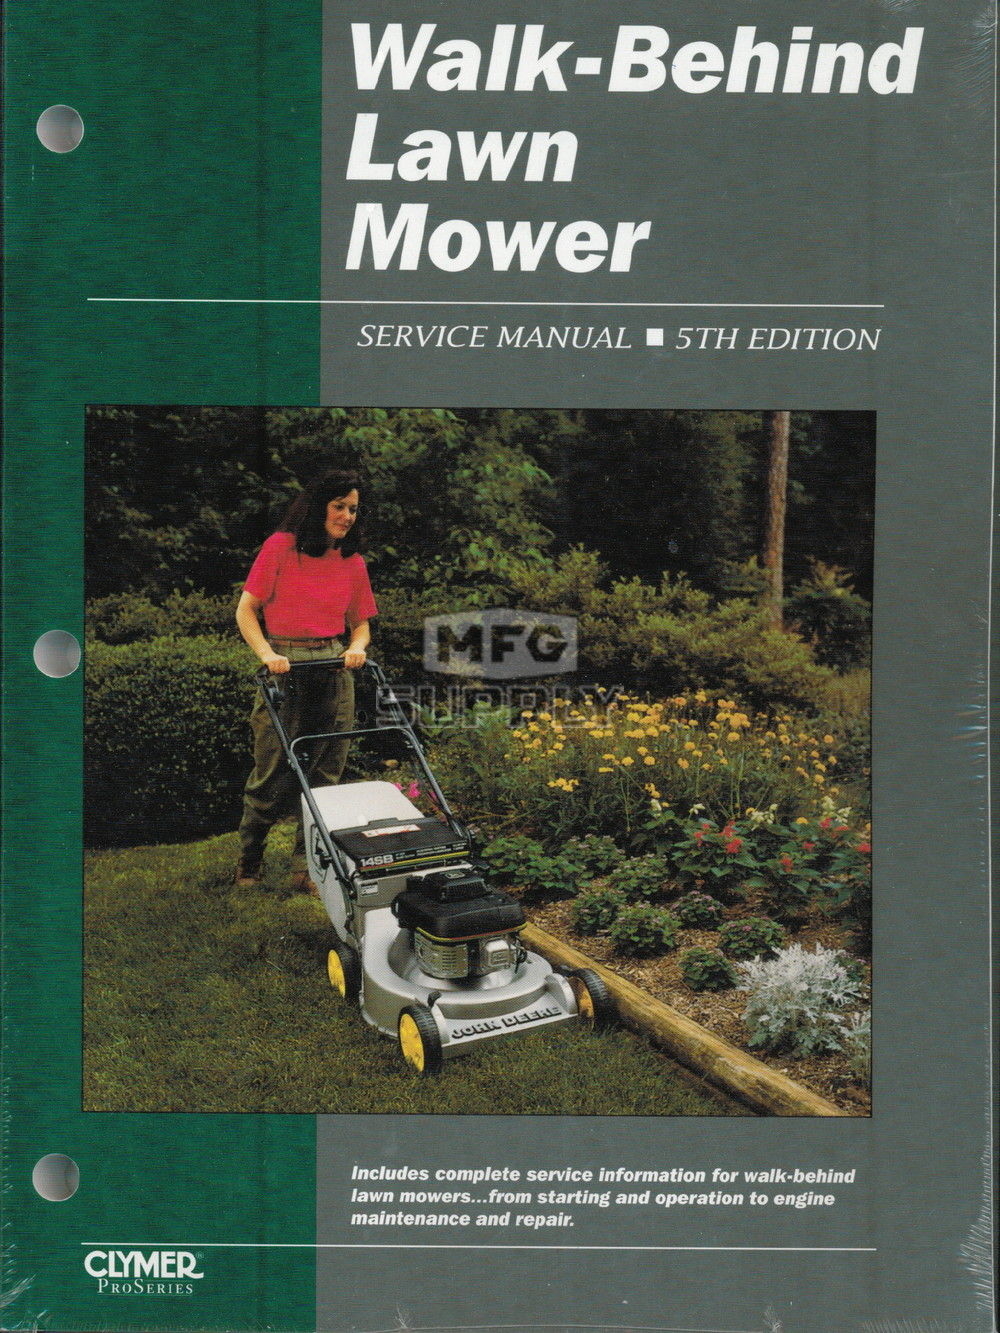 Walk Behind Lawn Mower Service Manual | Small Engine Parts | MFG Supply